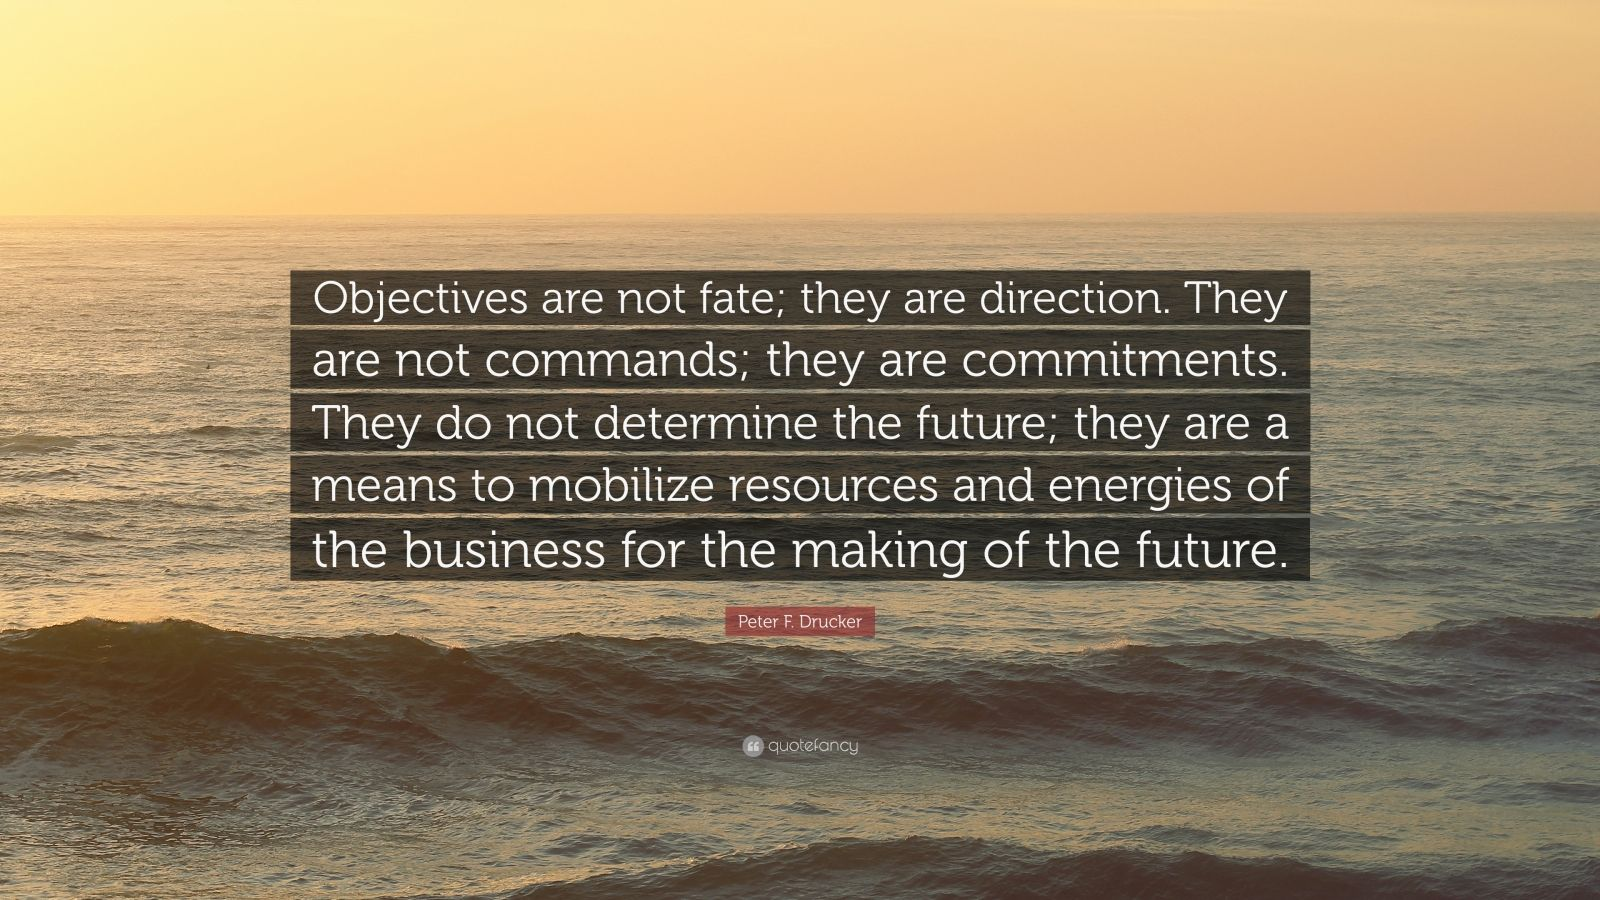 """Peter F. Drucker Quote: """"Objectives are not fate; they are direction. They are not commands; they are commitments. They do not determine the future; they are a means to mobilize resources and energies of the business for the making of the future."""""""